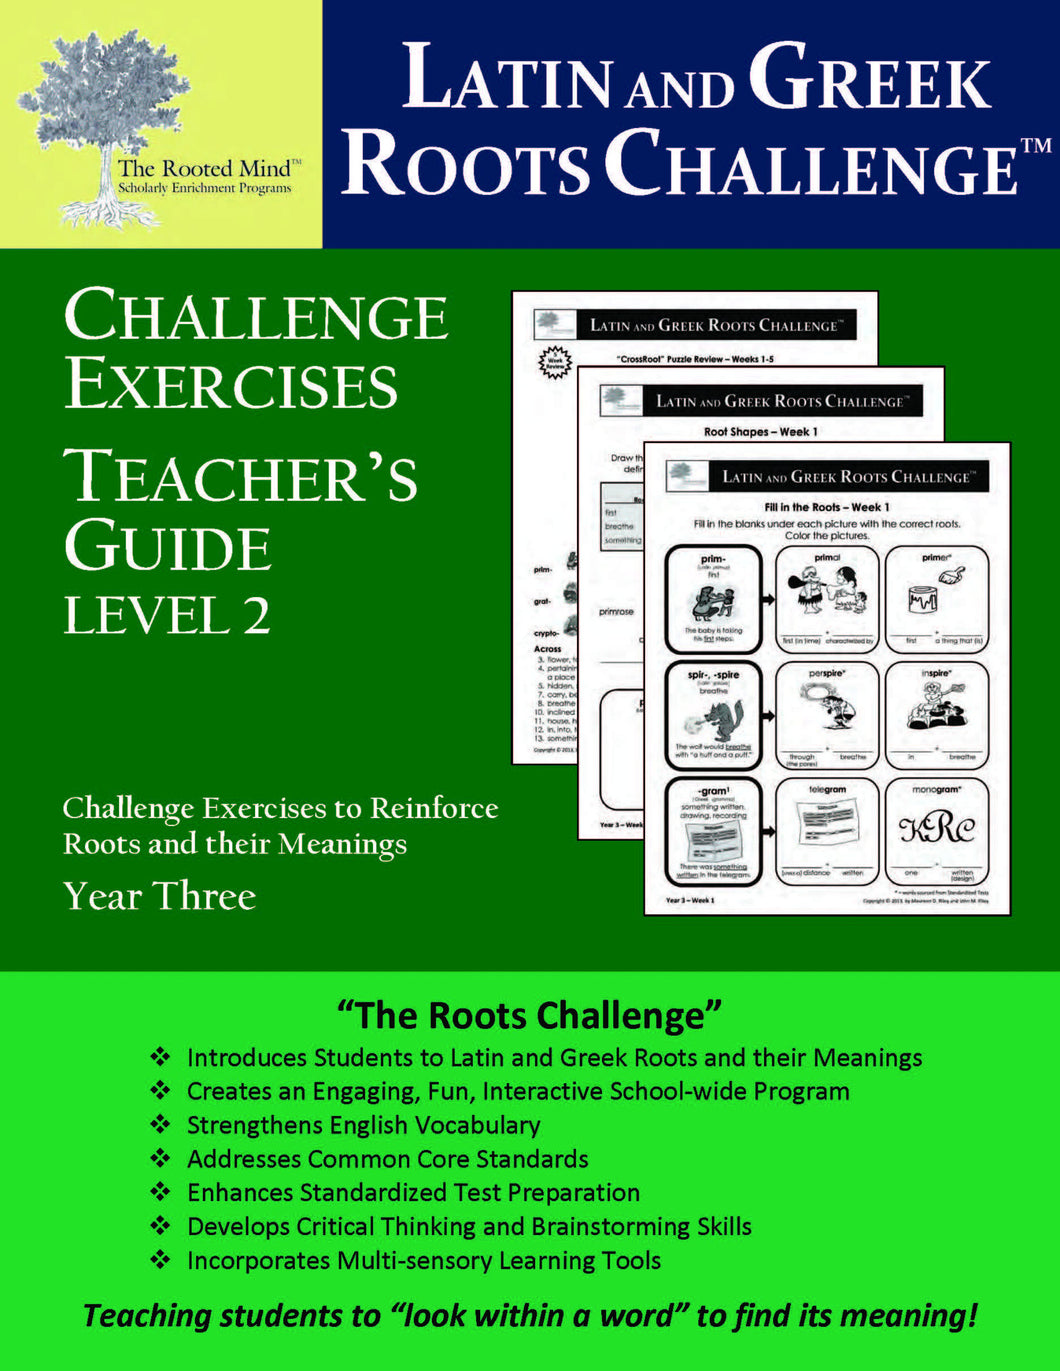 Latin and Greek Roots Challenge - Year 3 - Level 2 Teacher's Guide